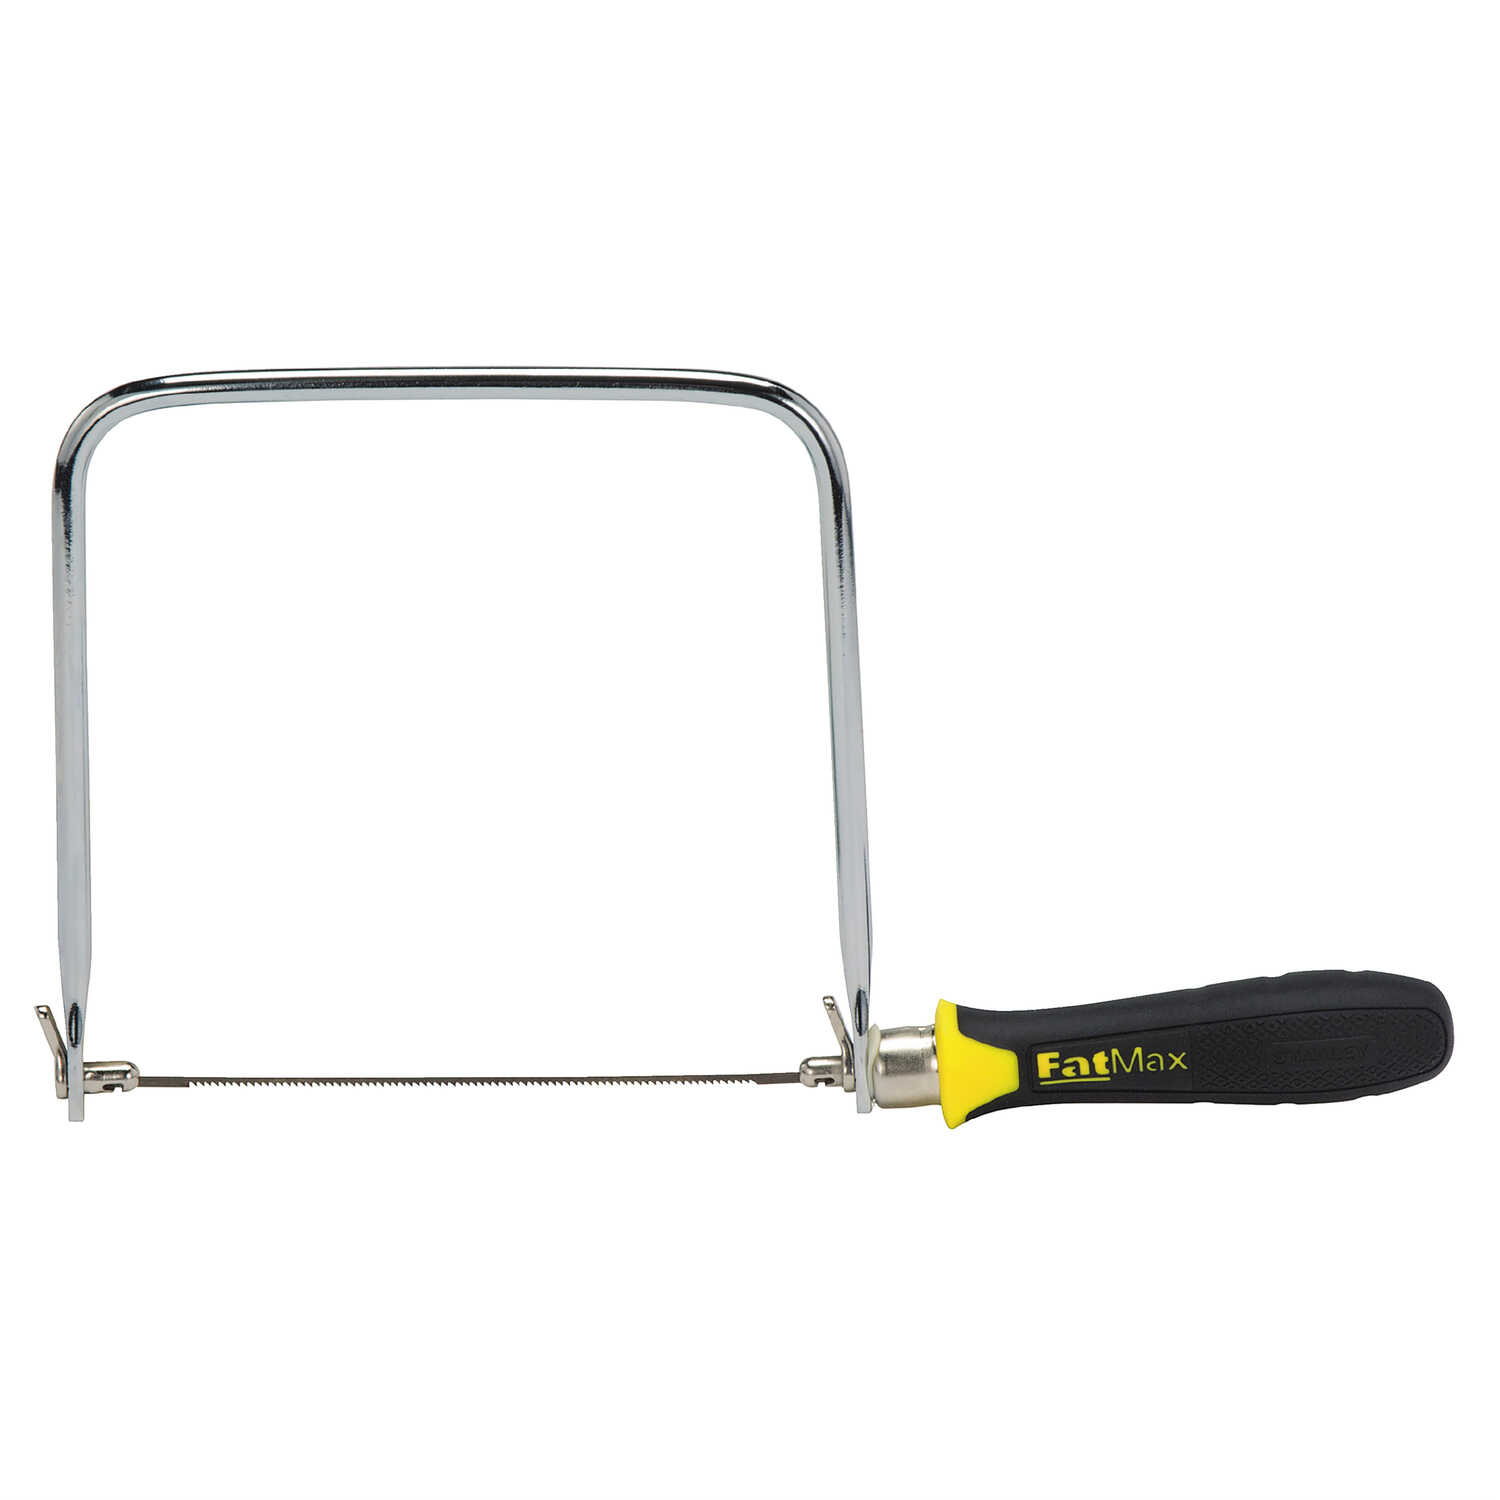 Stanley 6 38 in carbon steel coping saw 15 tpi ace hardware carbon steel coping saw 15 tpi greentooth Choice Image